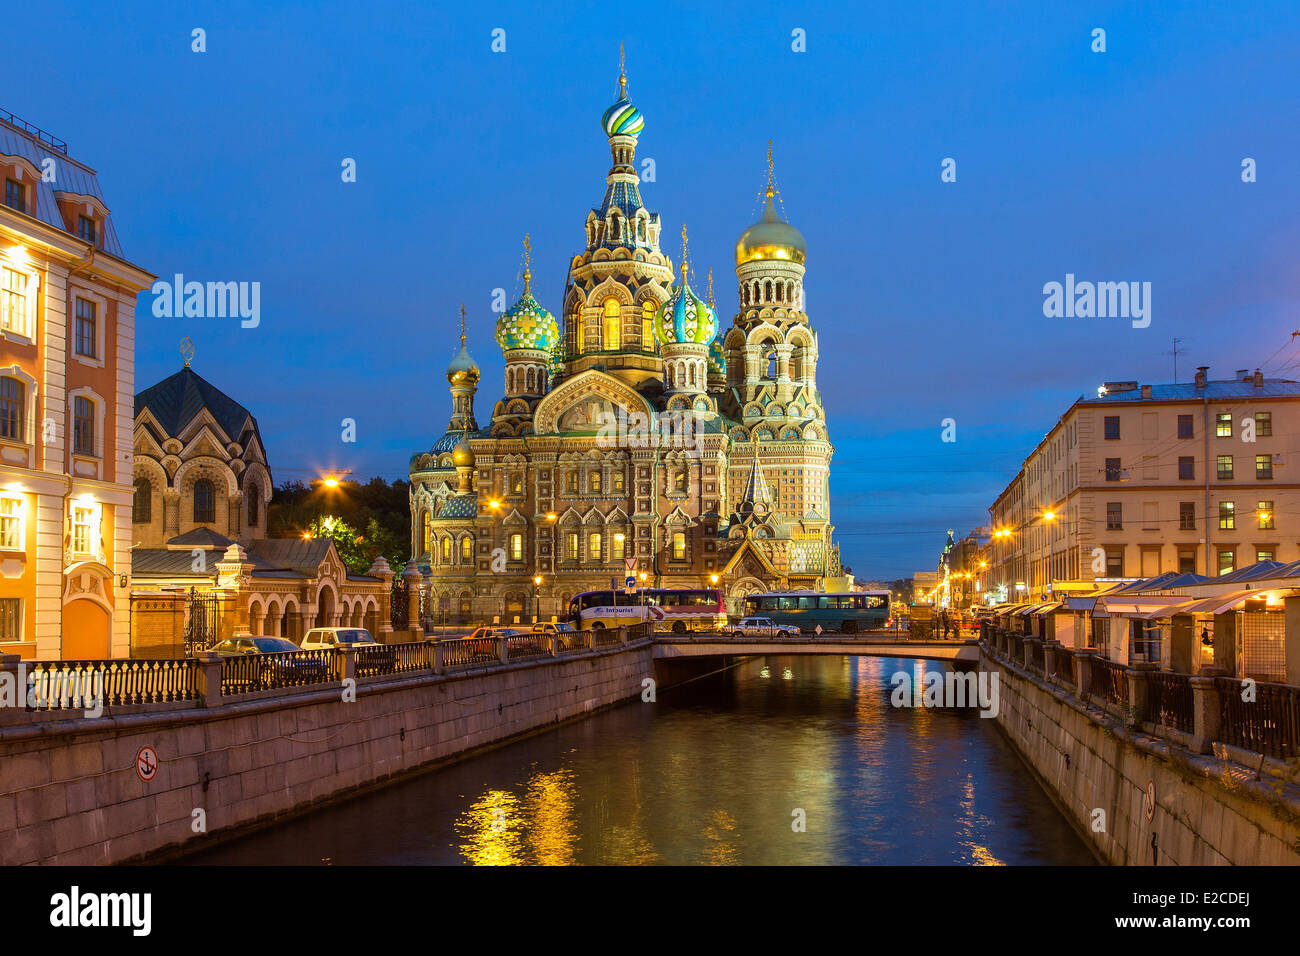 Russia, Saint Petersburg, listed as World Heritage by UNESCO, Church of the Saviour on Spilled Blood at Dusk - Stock Image